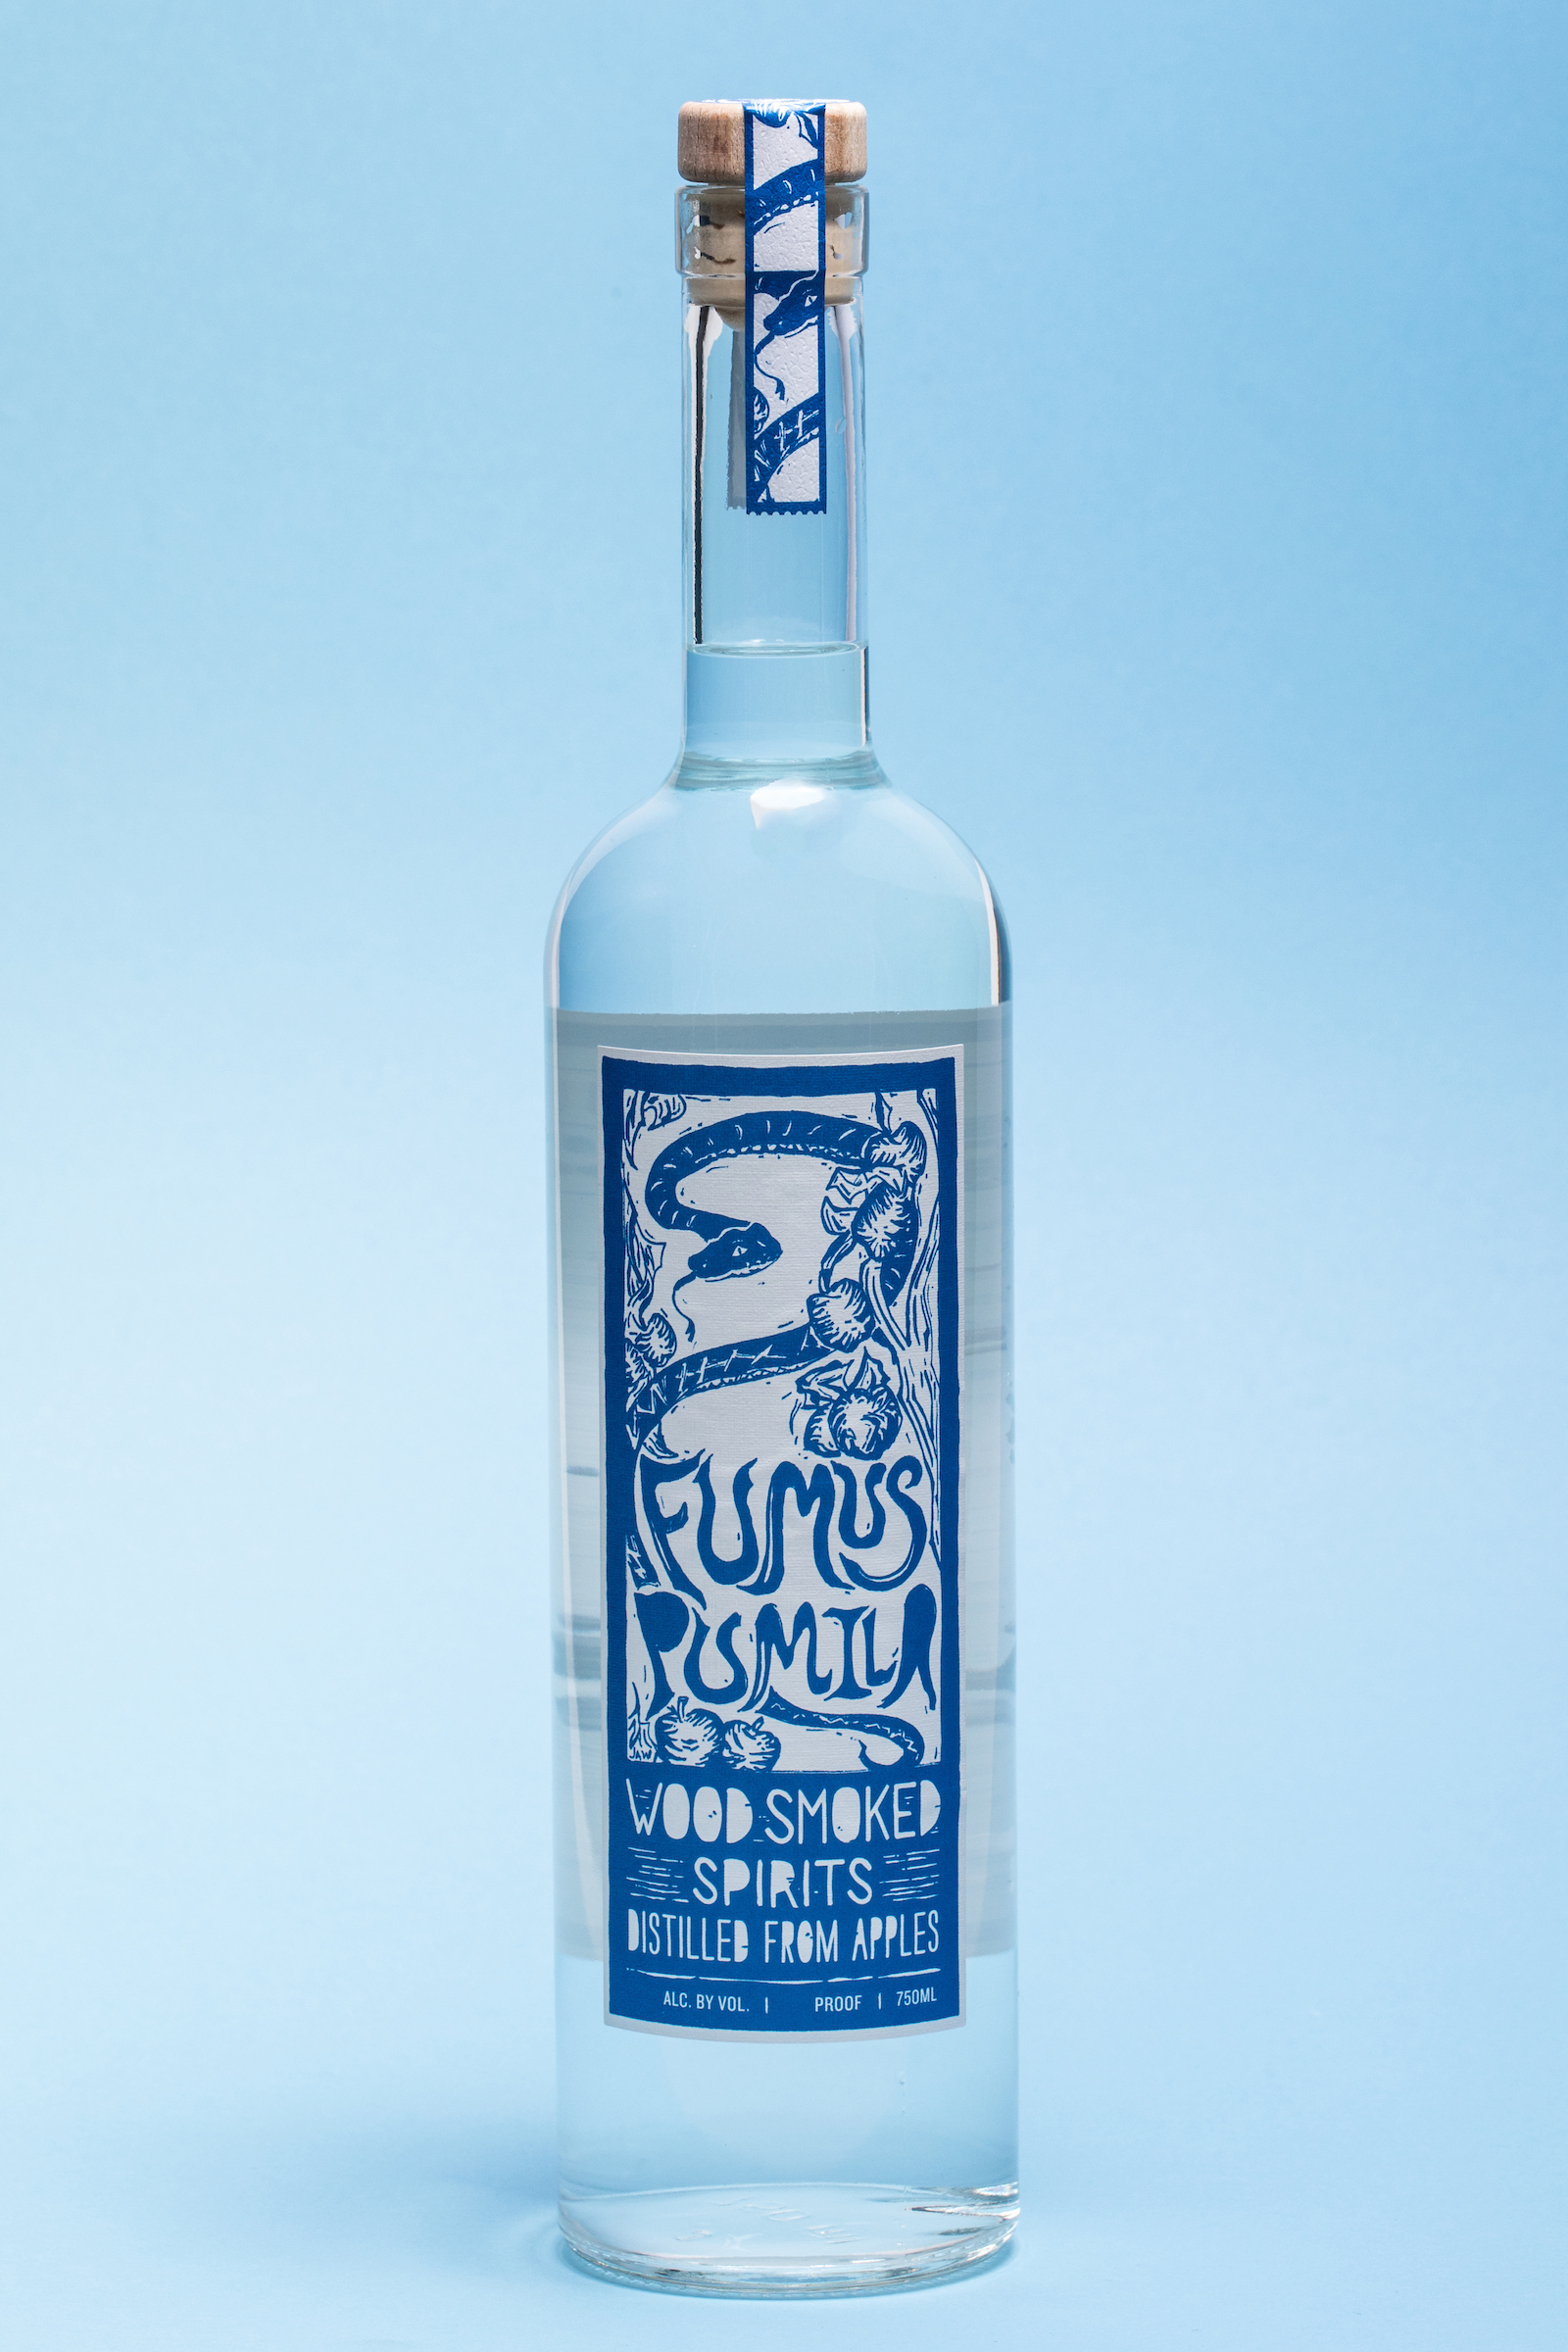 Baltimore Spirits Co Fumus Pumila.jpg